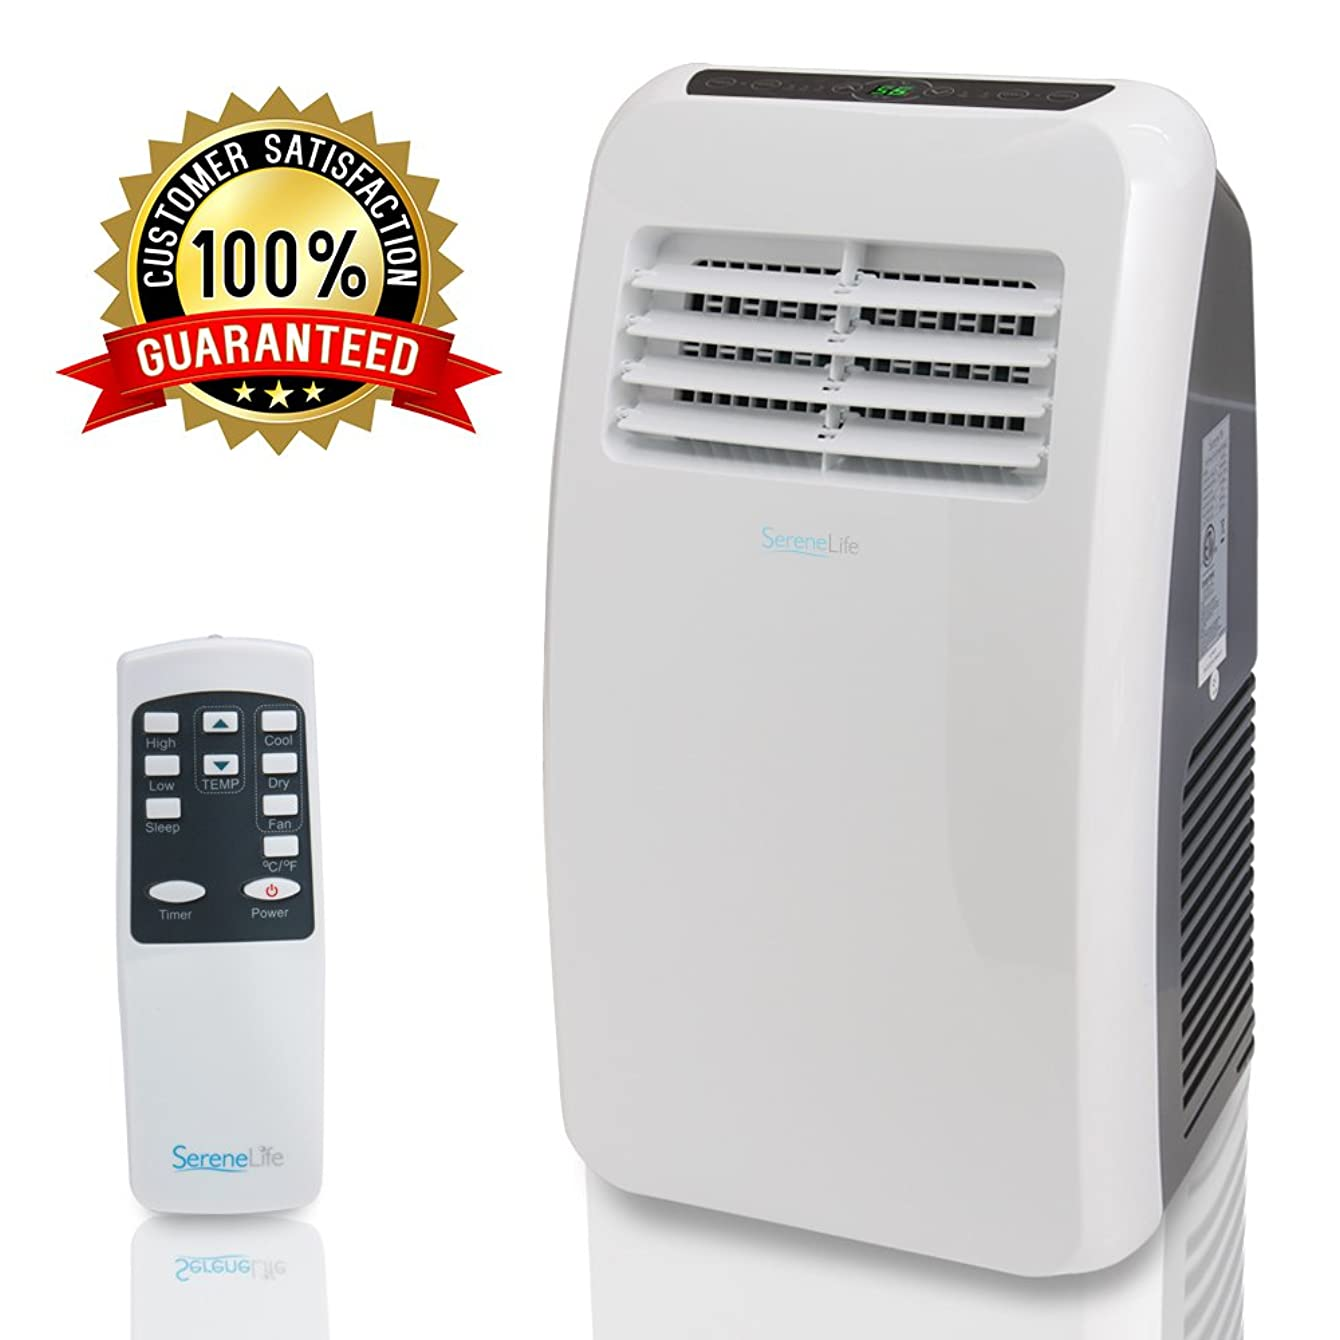 SereneLife 8,000 BTU Portable Air ir Conditioner, 3-in-1 Floor AC Unit with  Built-in Dehumidifier, Fan Modes, Remote Control, Complete Window Mount Exhaust Kit for Rooms Up to 200 Sq. Ft